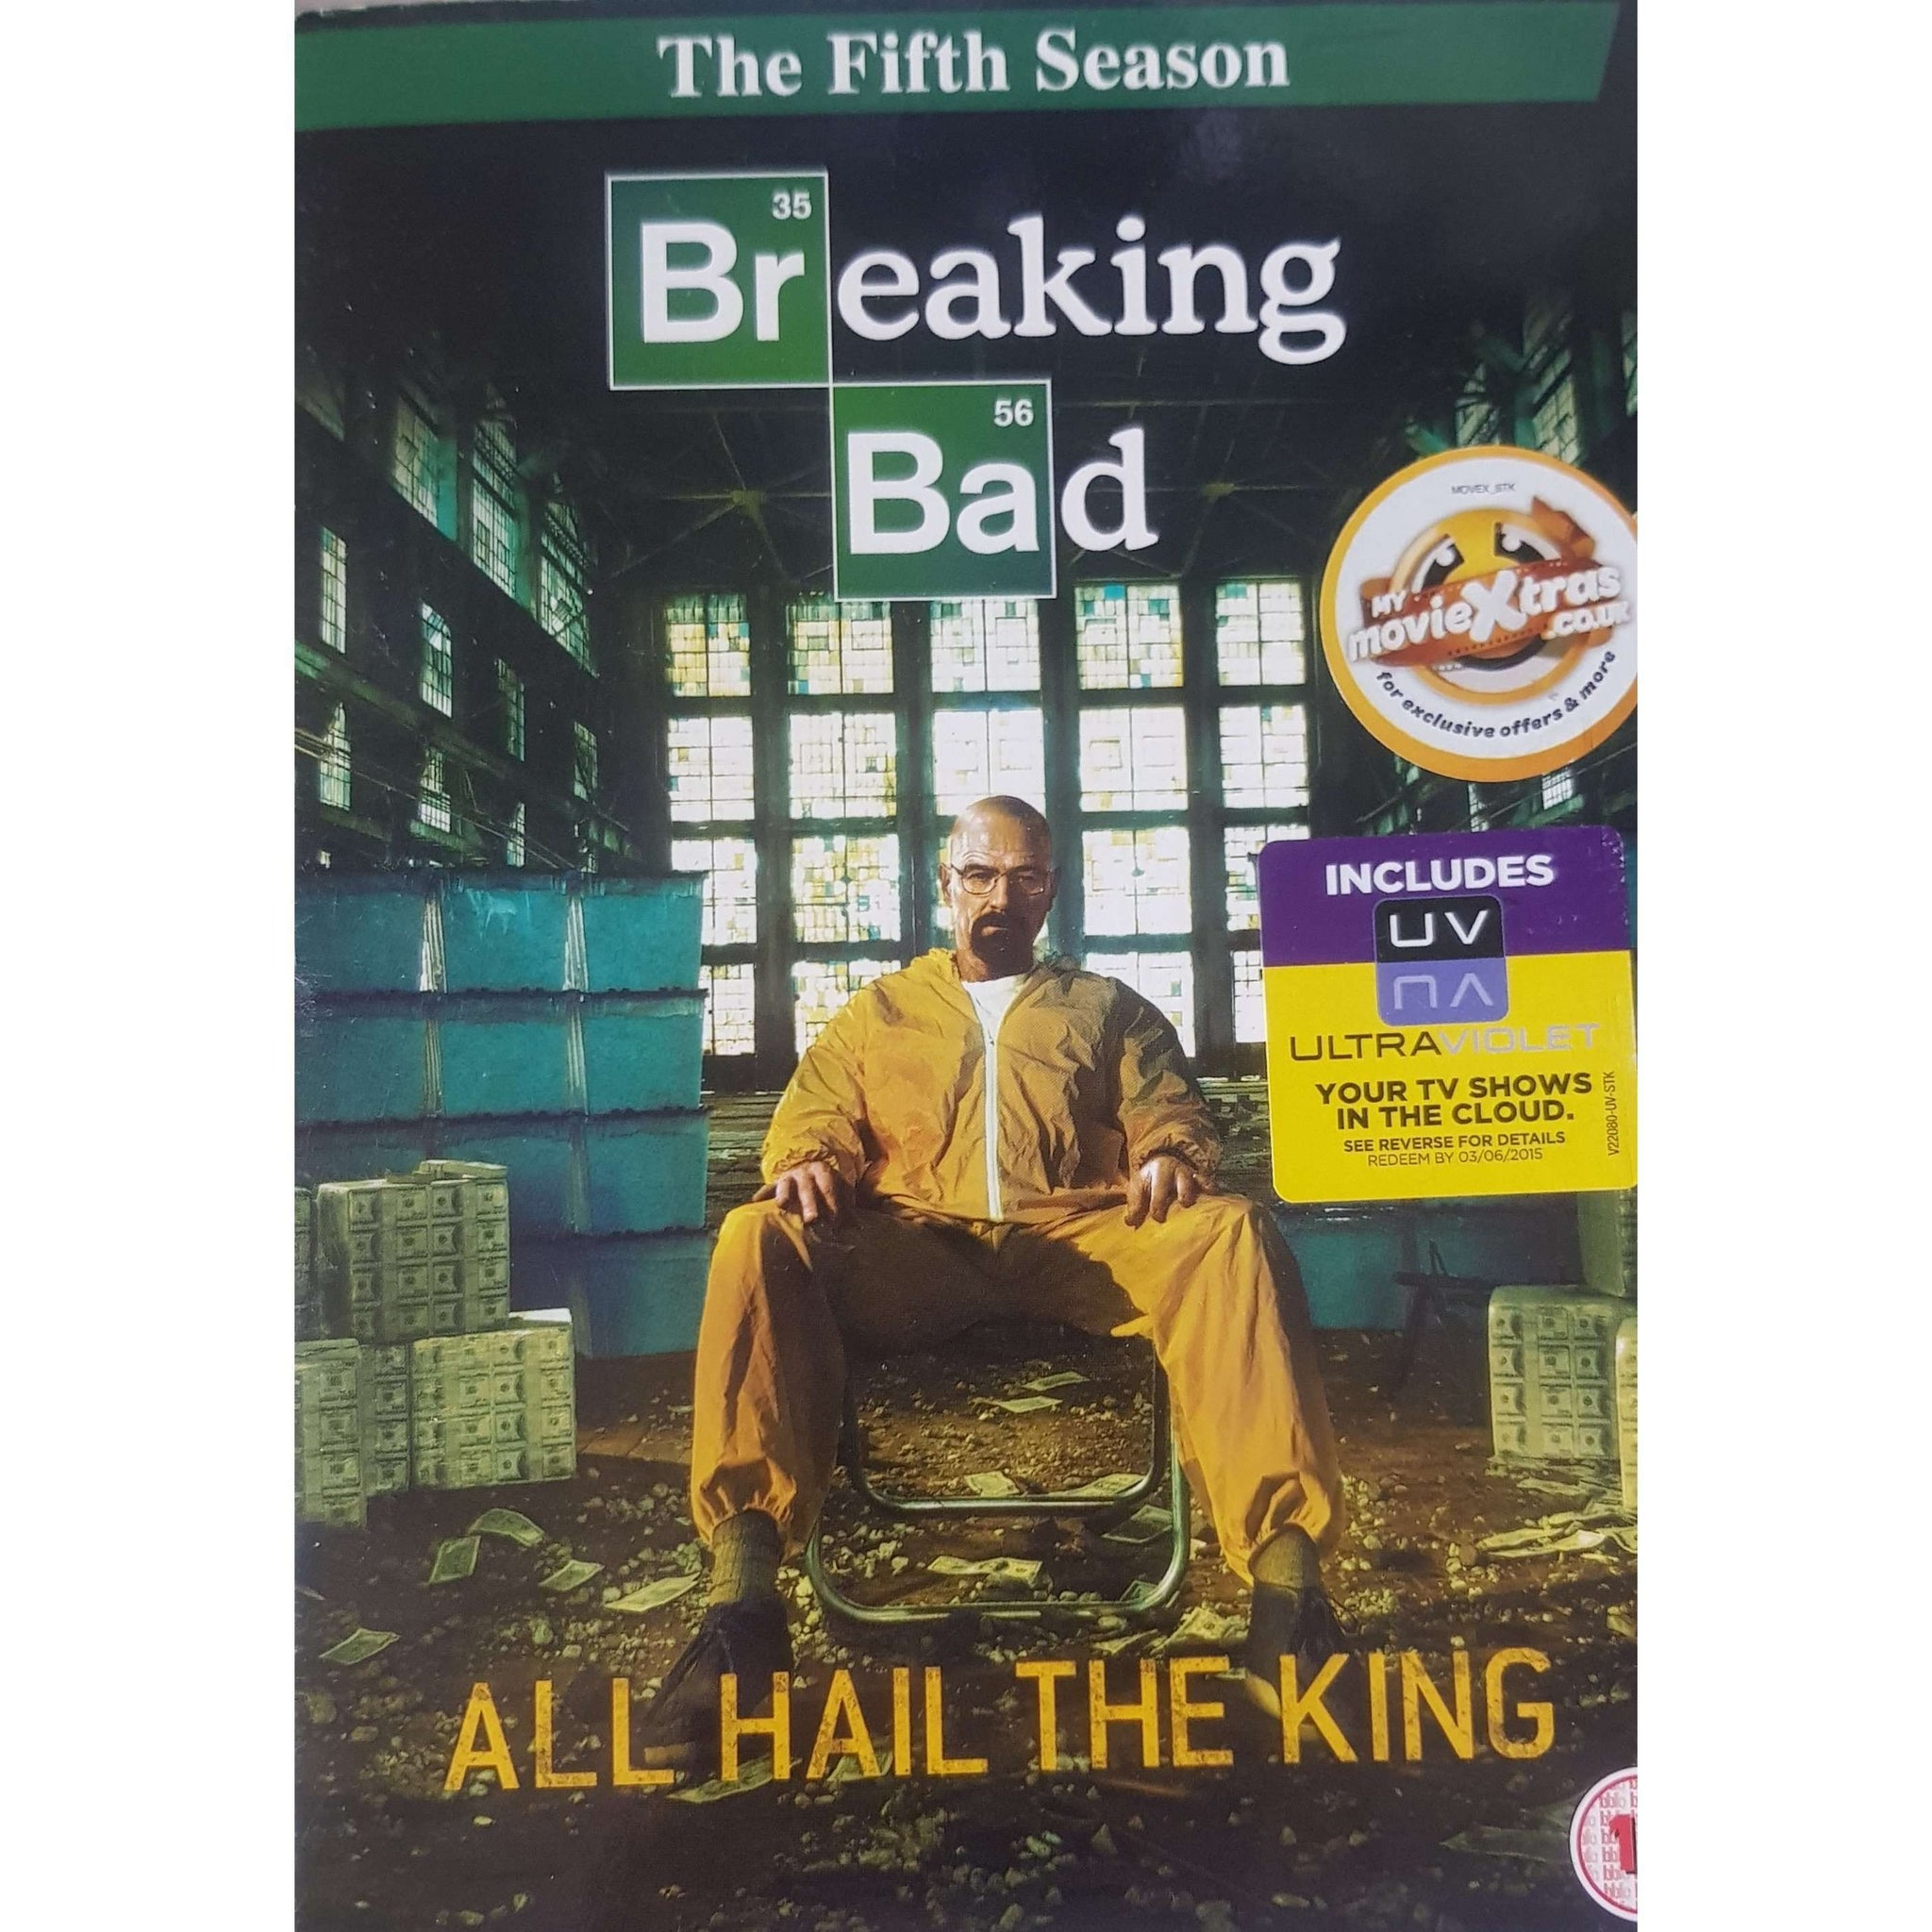 Breaking Bad - Season 5 DVD Boxset (PREOWNED) (15)